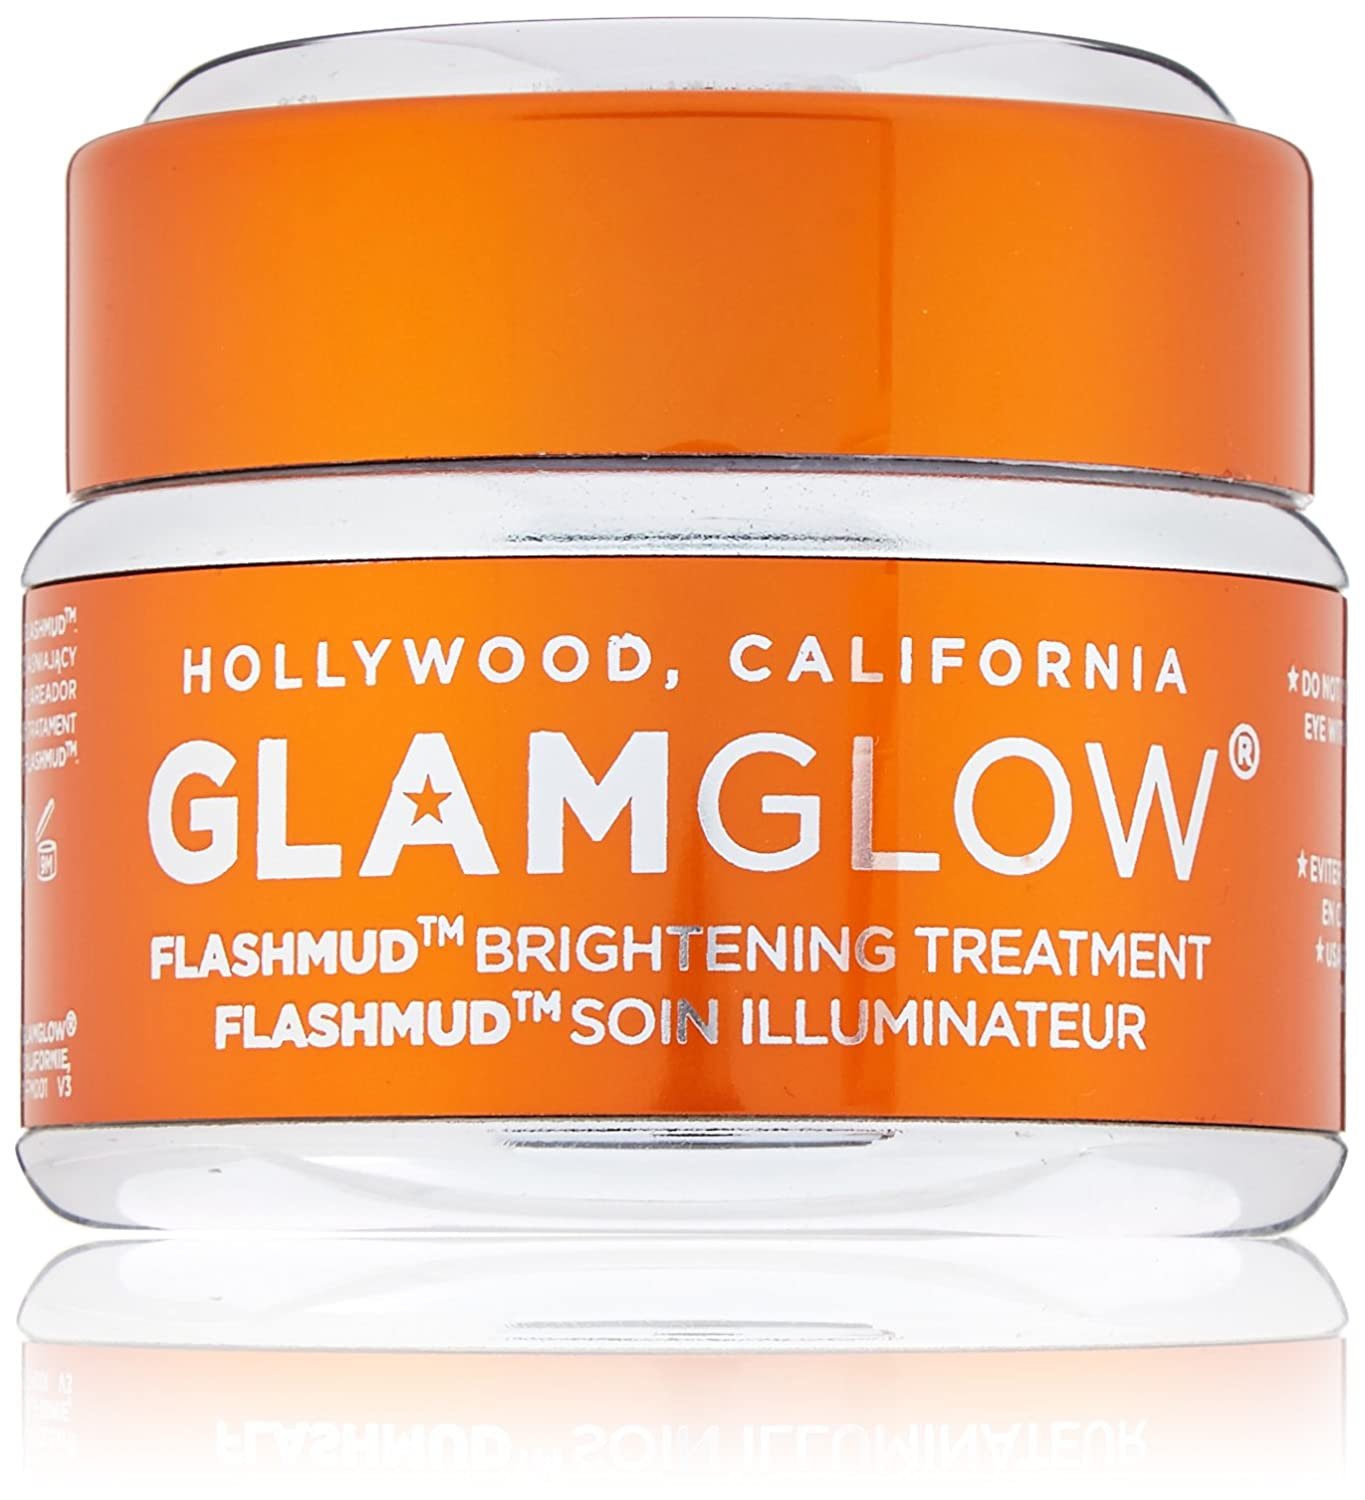 Glamglow Flashmud Brightening Treatment, 1.7 Ounce Universal Perfumes GLGLOWC73004504